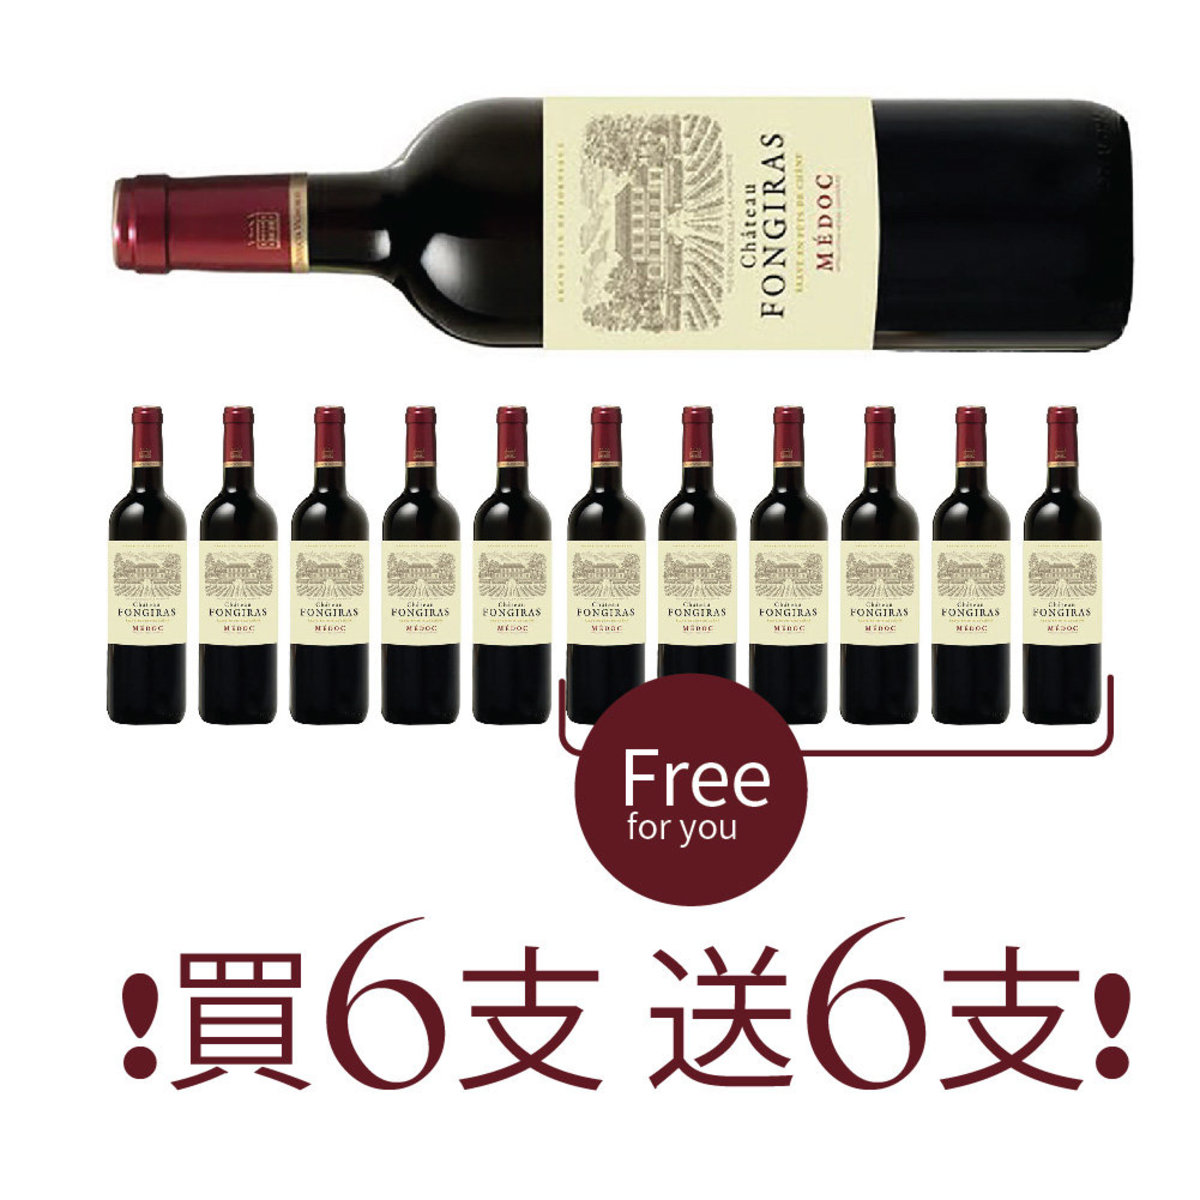 Medoc 2015 750ml Buy 6 Get 6 Free Offer! Extra Gift: A Free  Bottle of Macabeo White